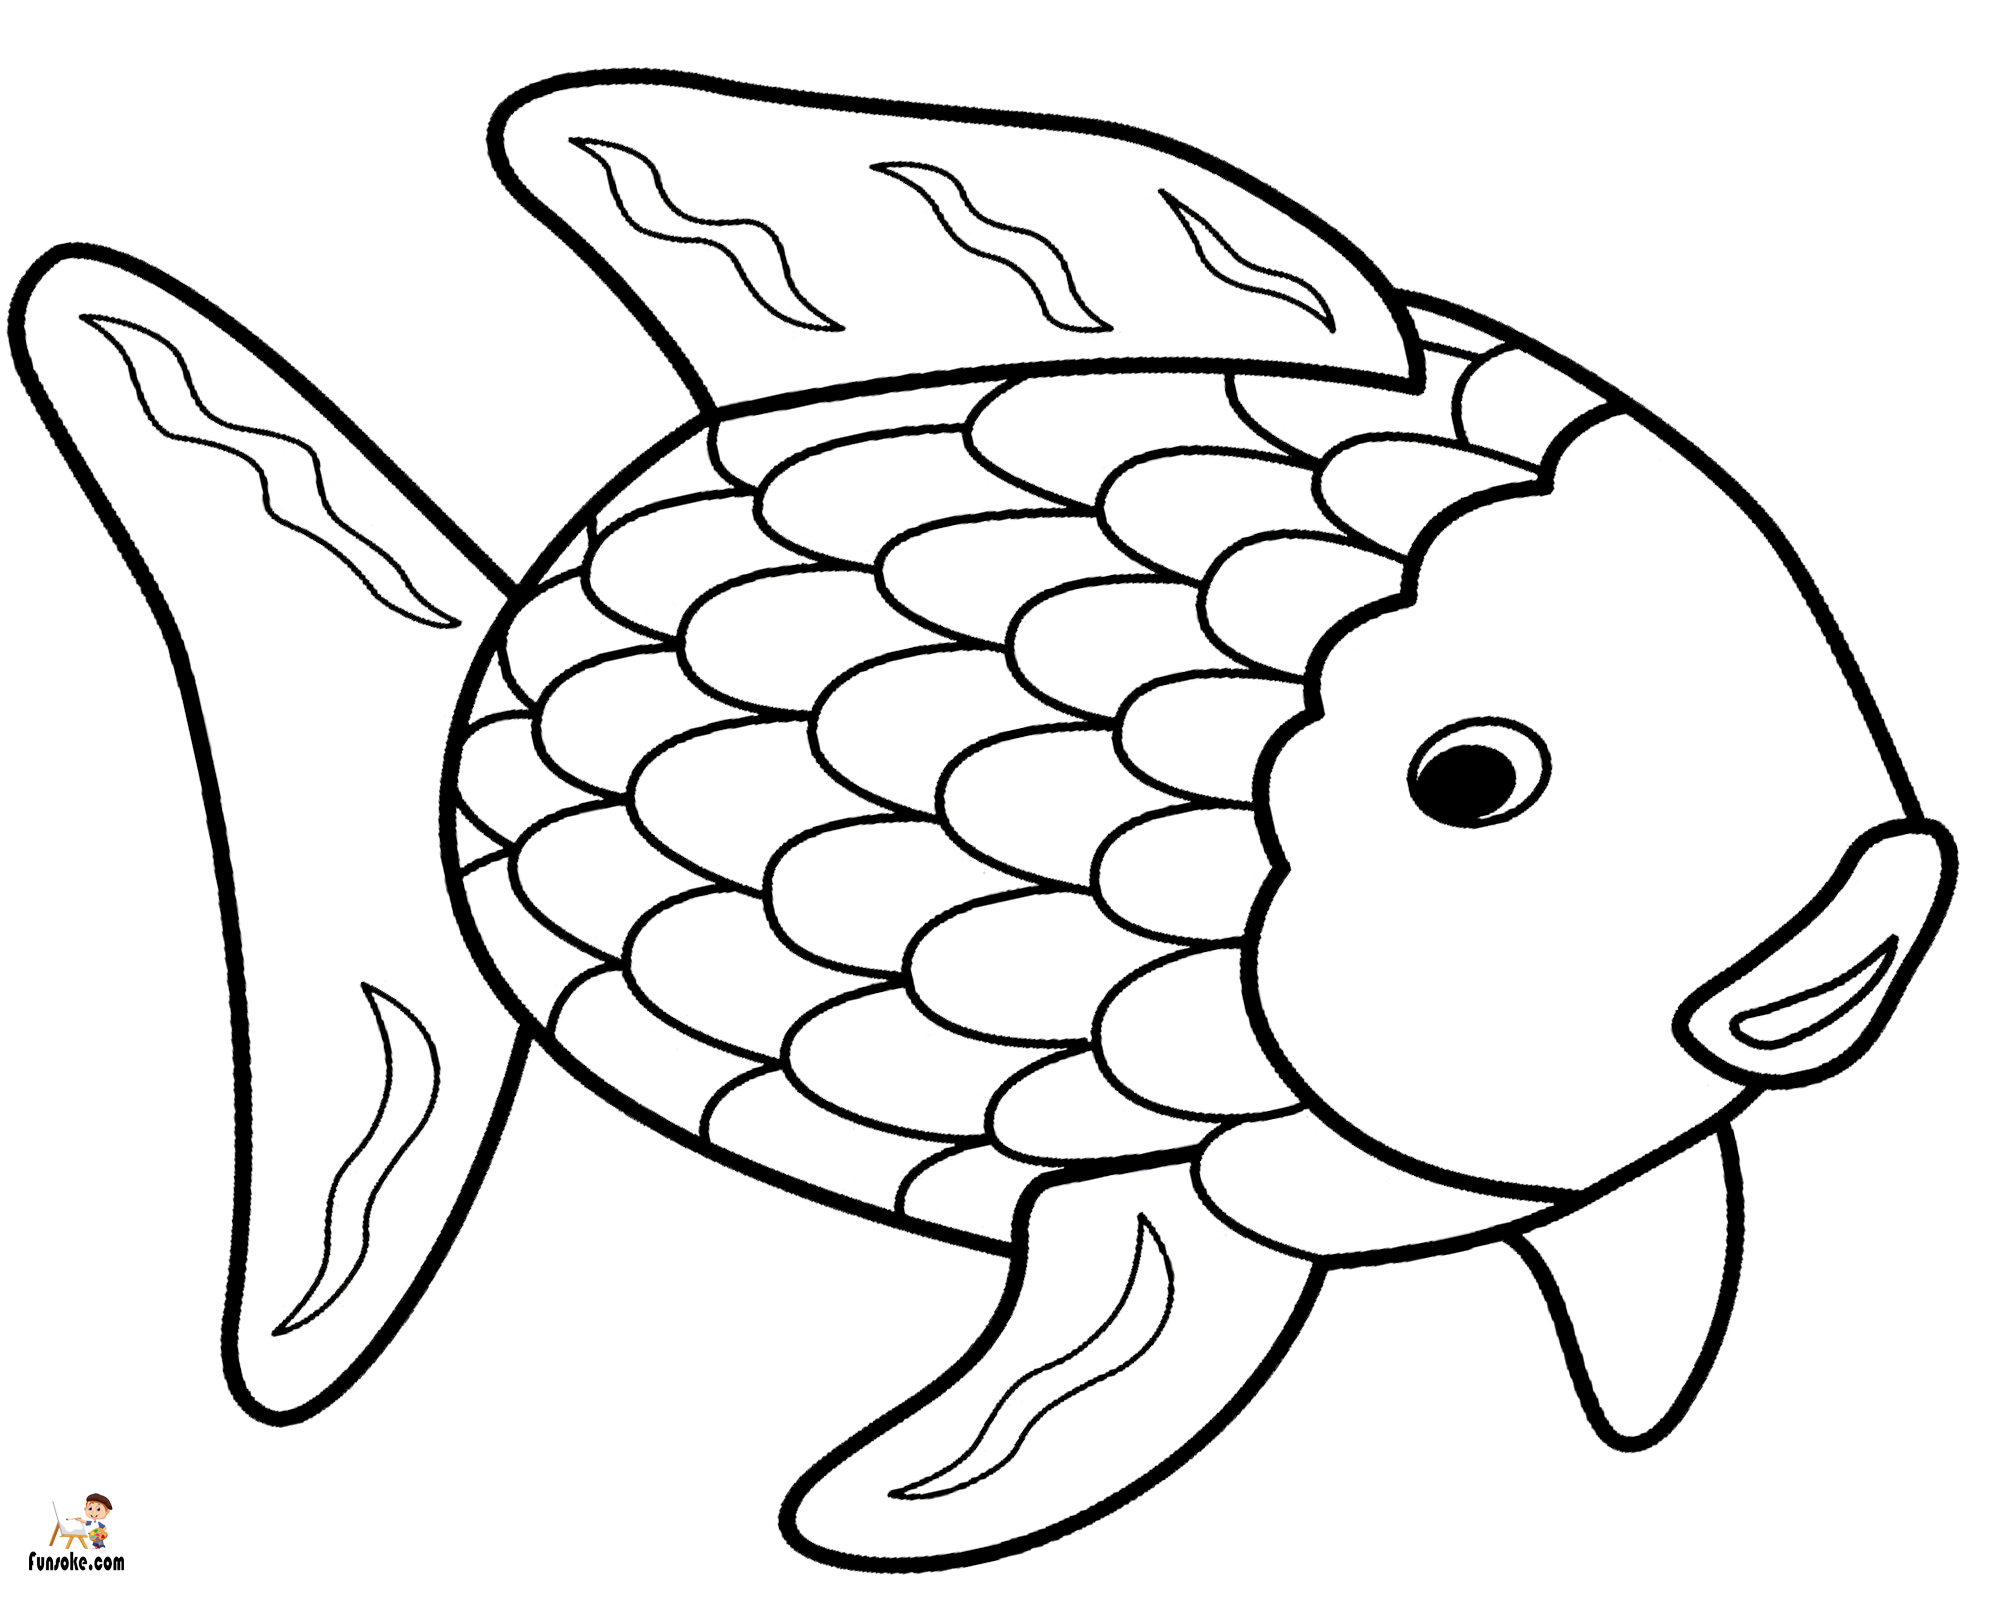 free coloring pages fish free printable fish coloring pages for kids coloring pages free fish